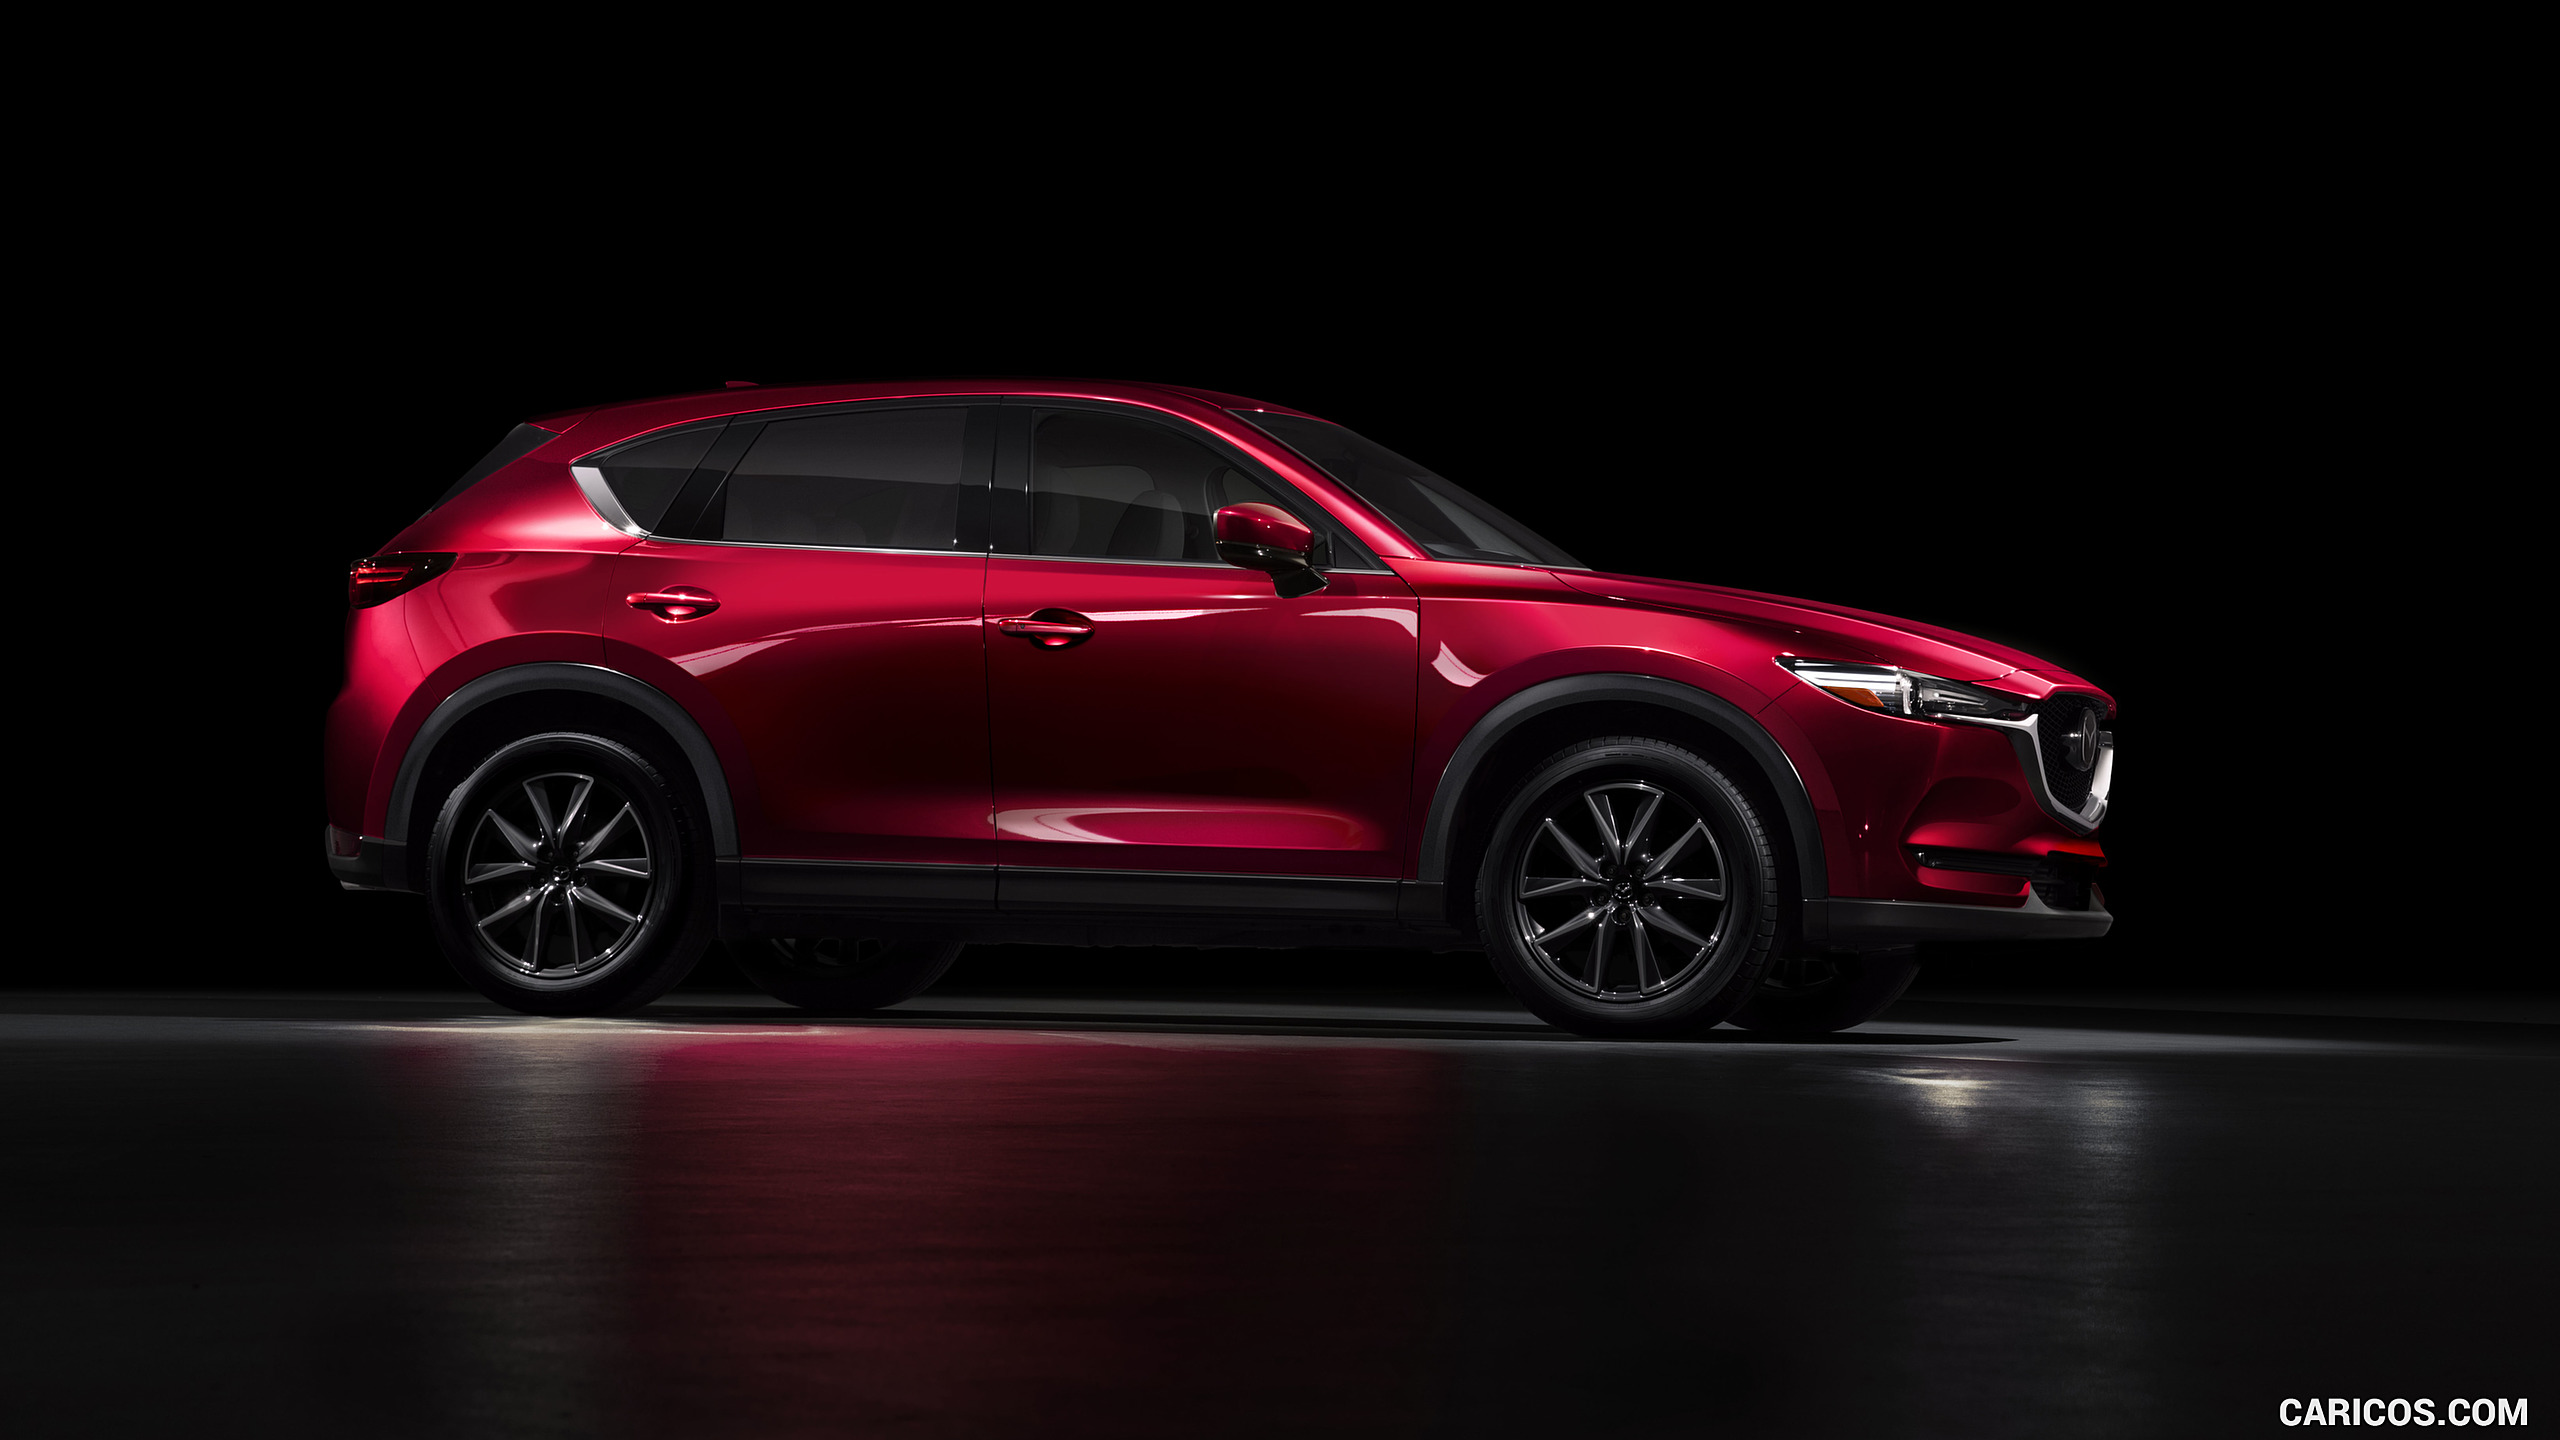 2560x1440 - Mazda CX-5 Wallpapers 21